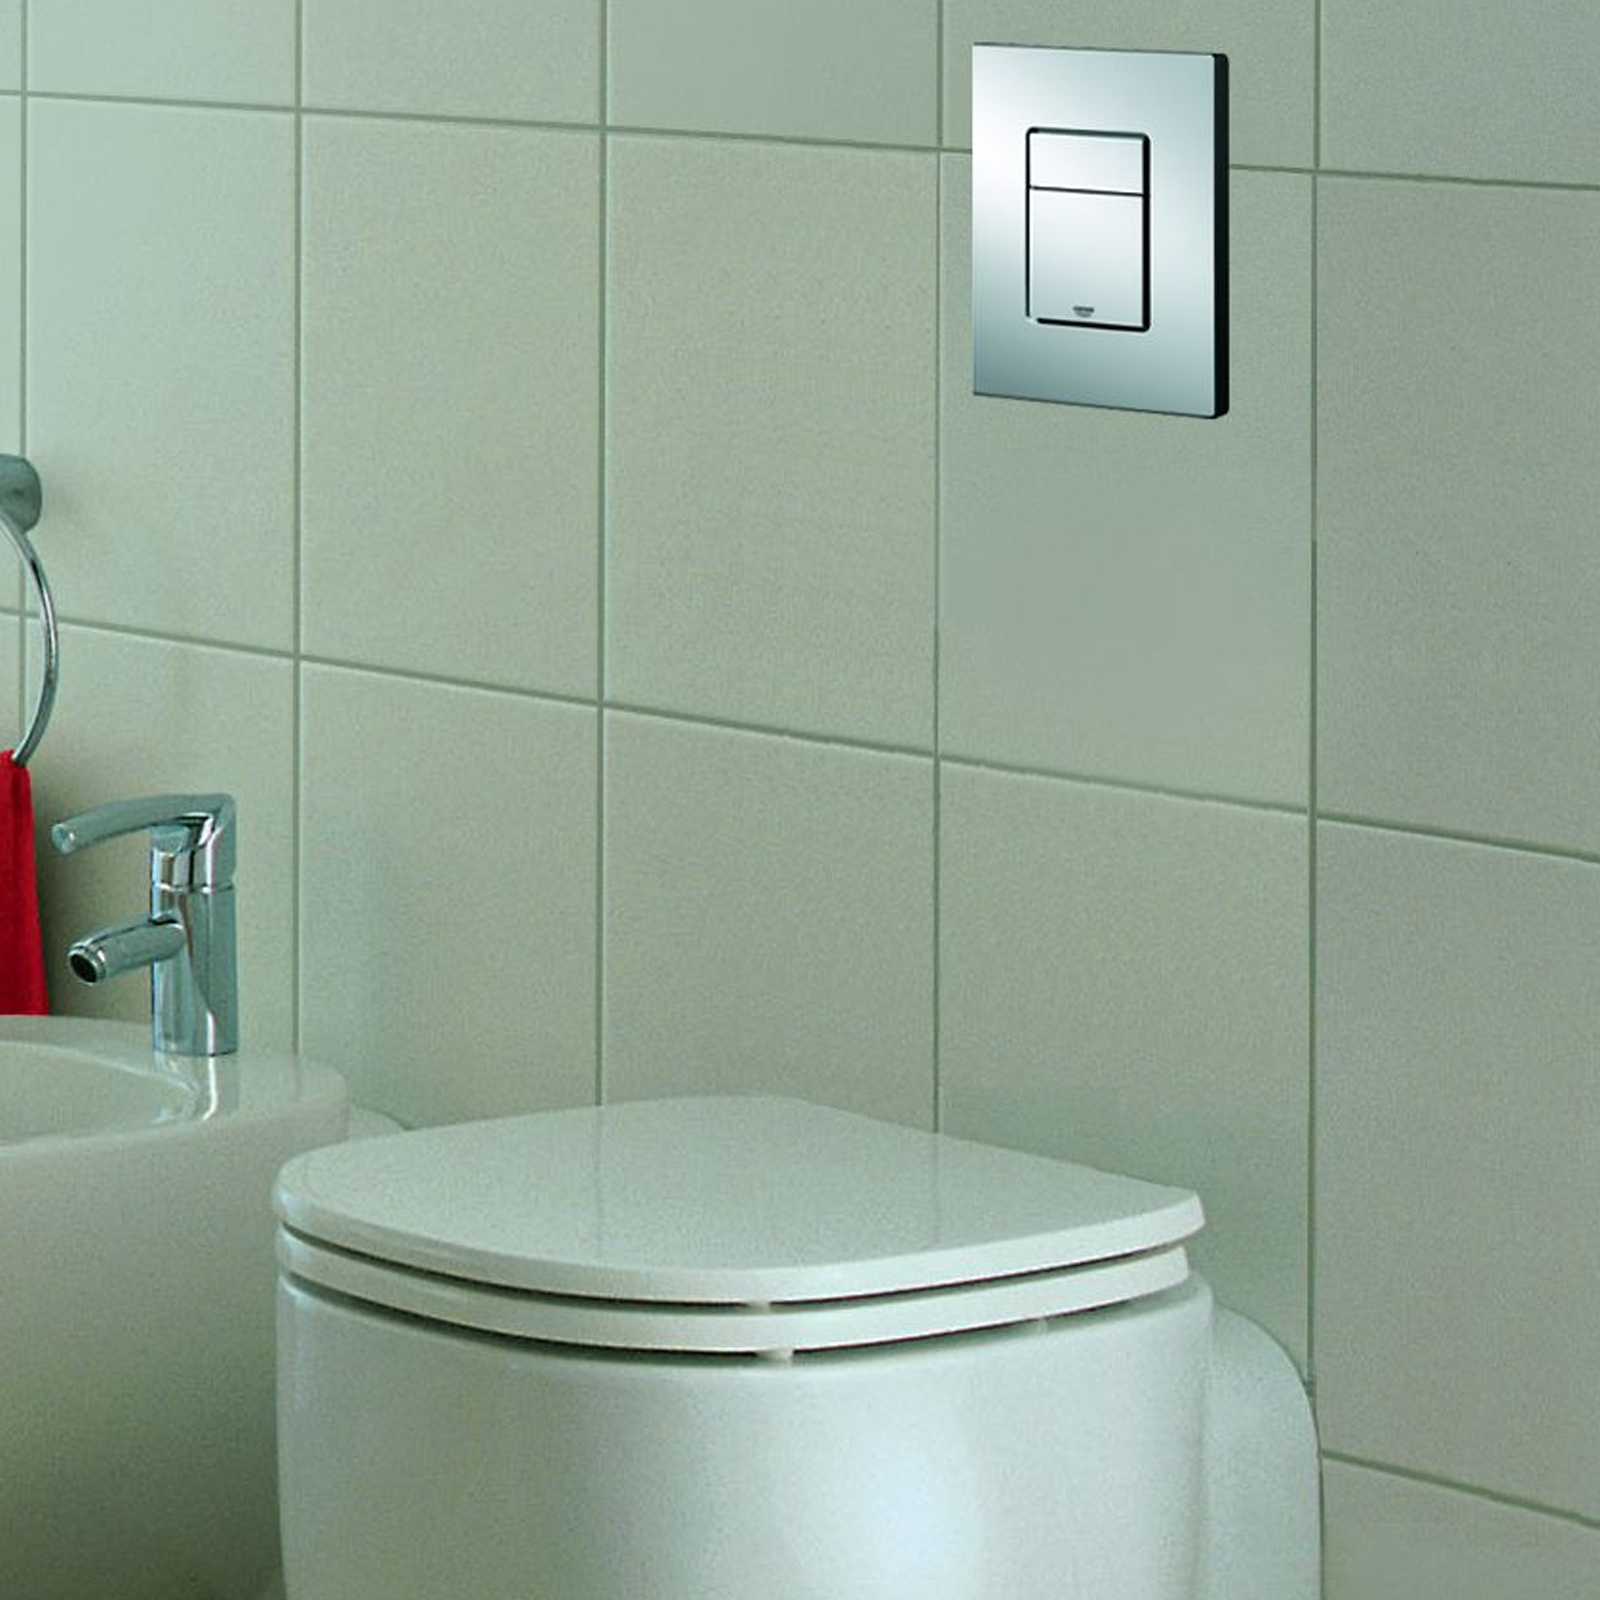 Grohe Actuator Plates